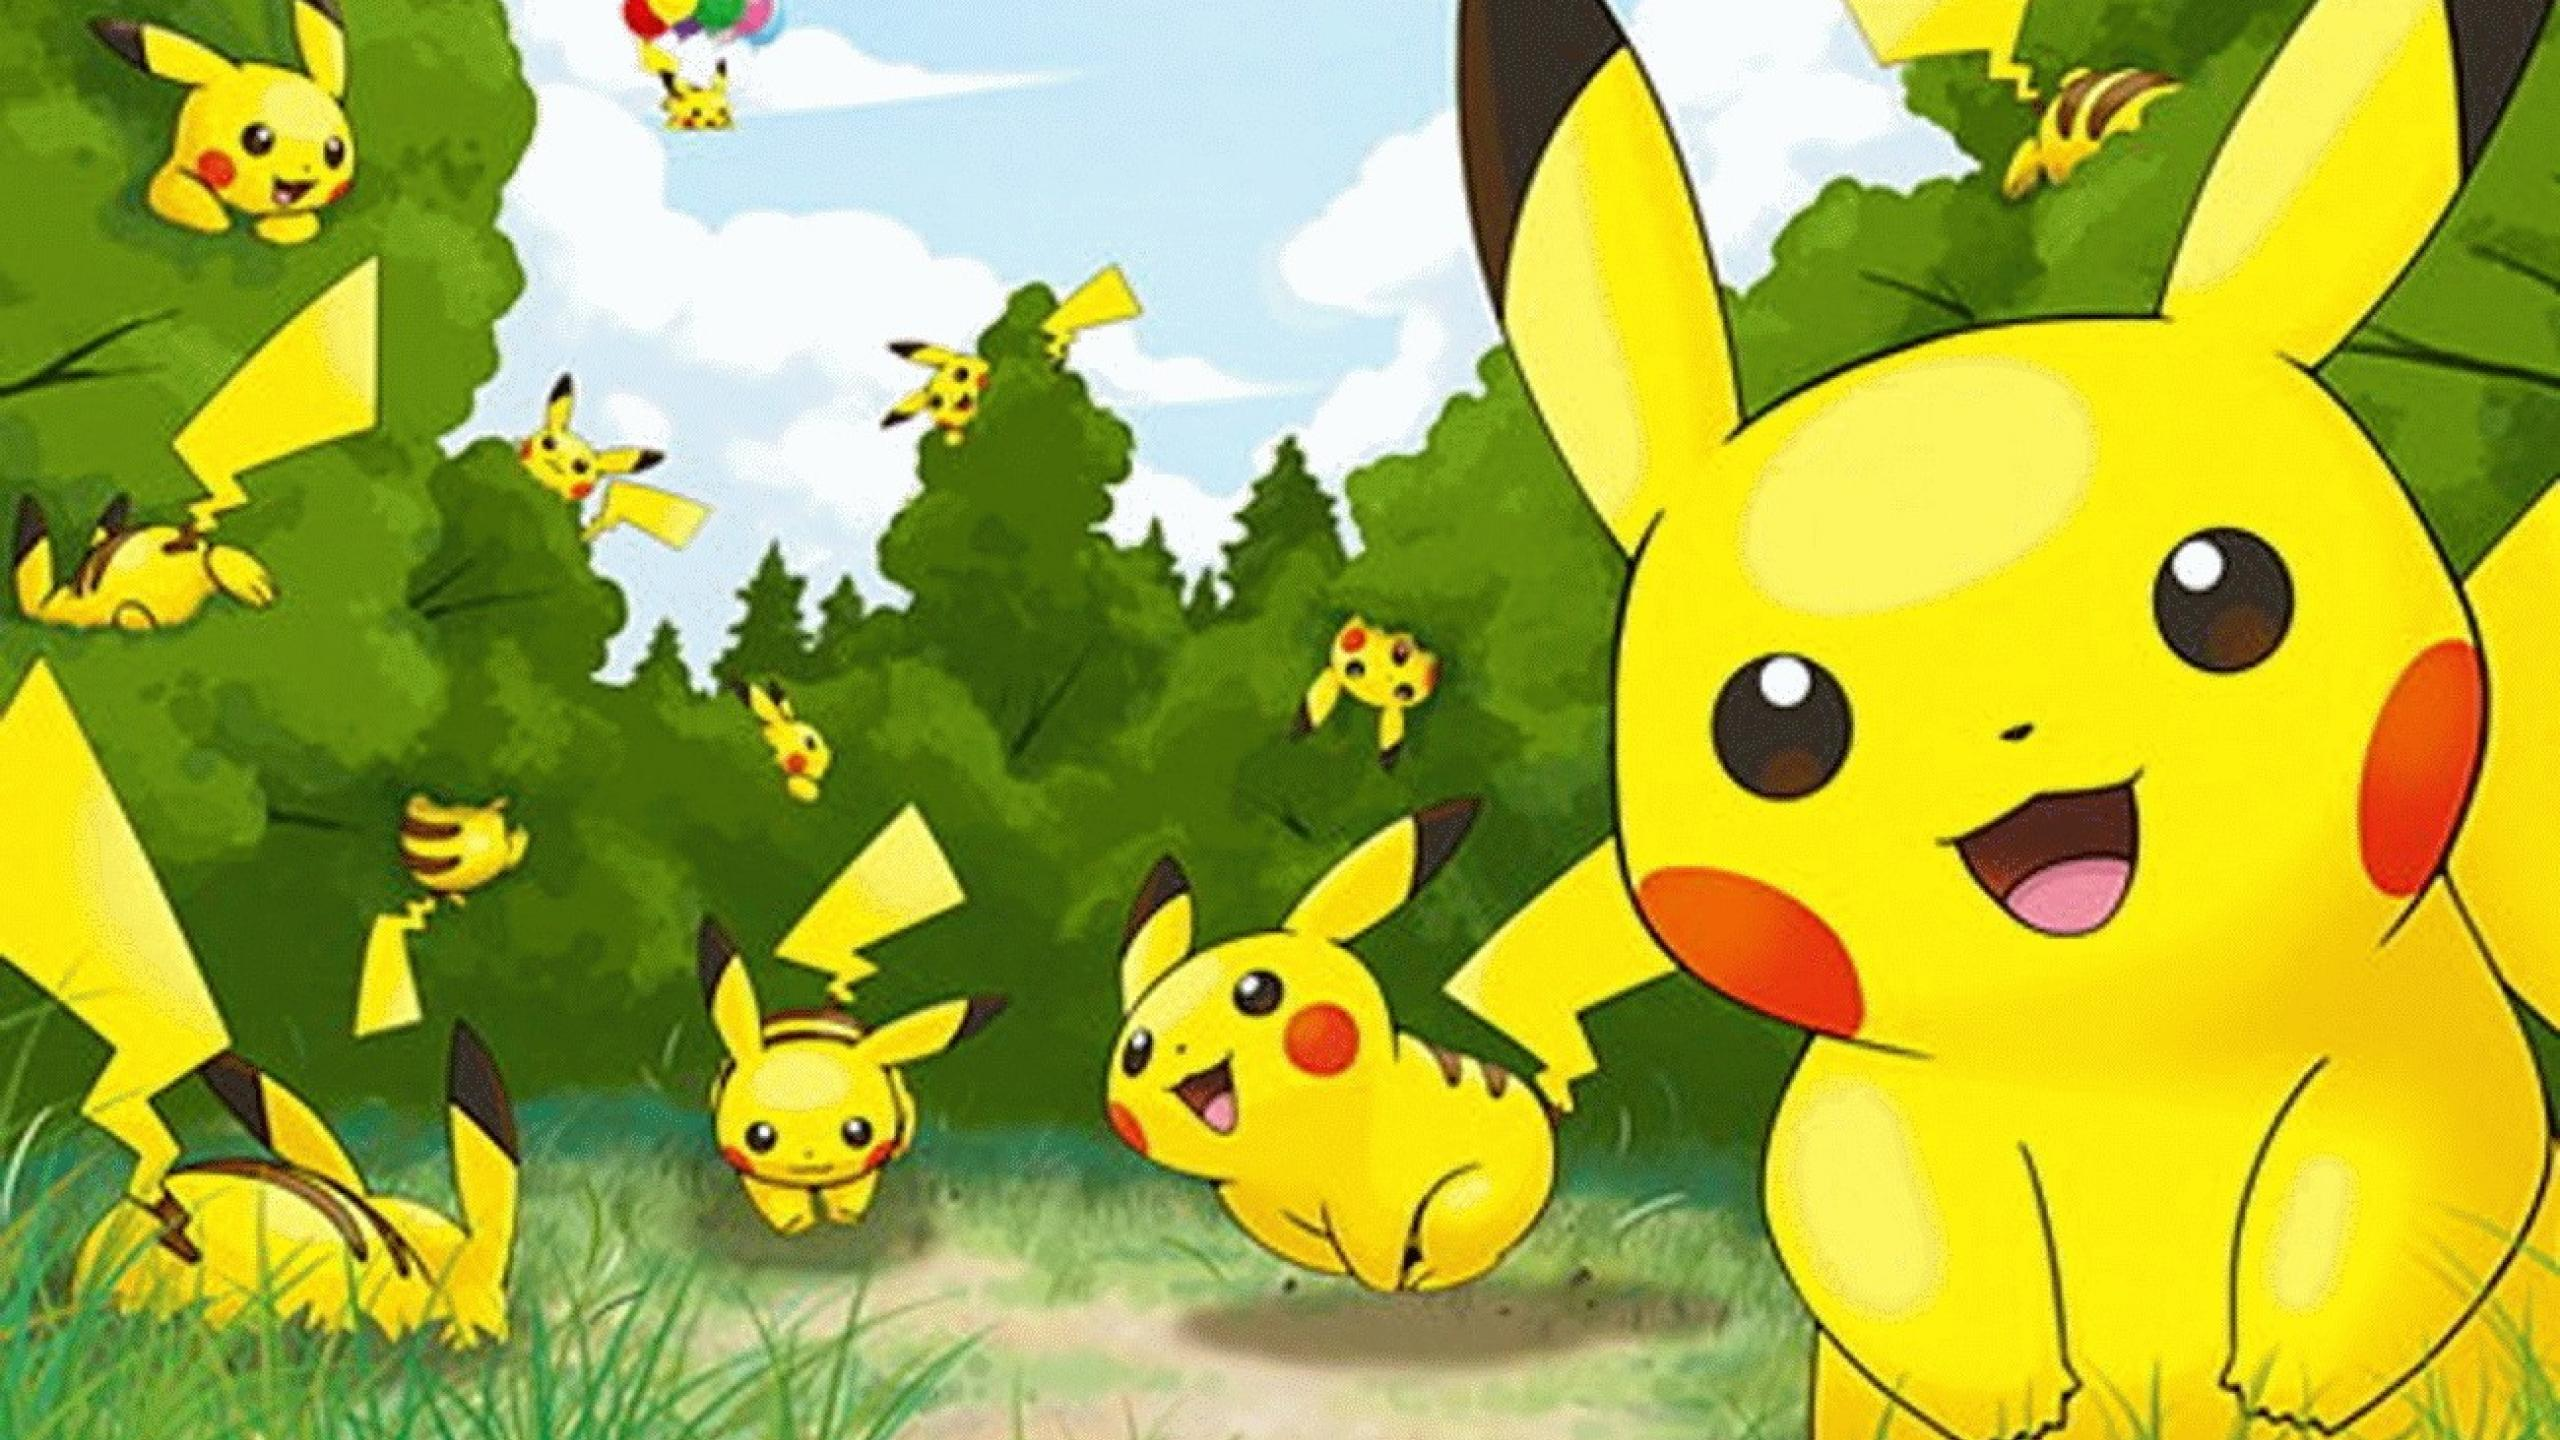 Awesome Pokemon Pikachu Hd Image Wallpaper Backgrounds For Laptop ...